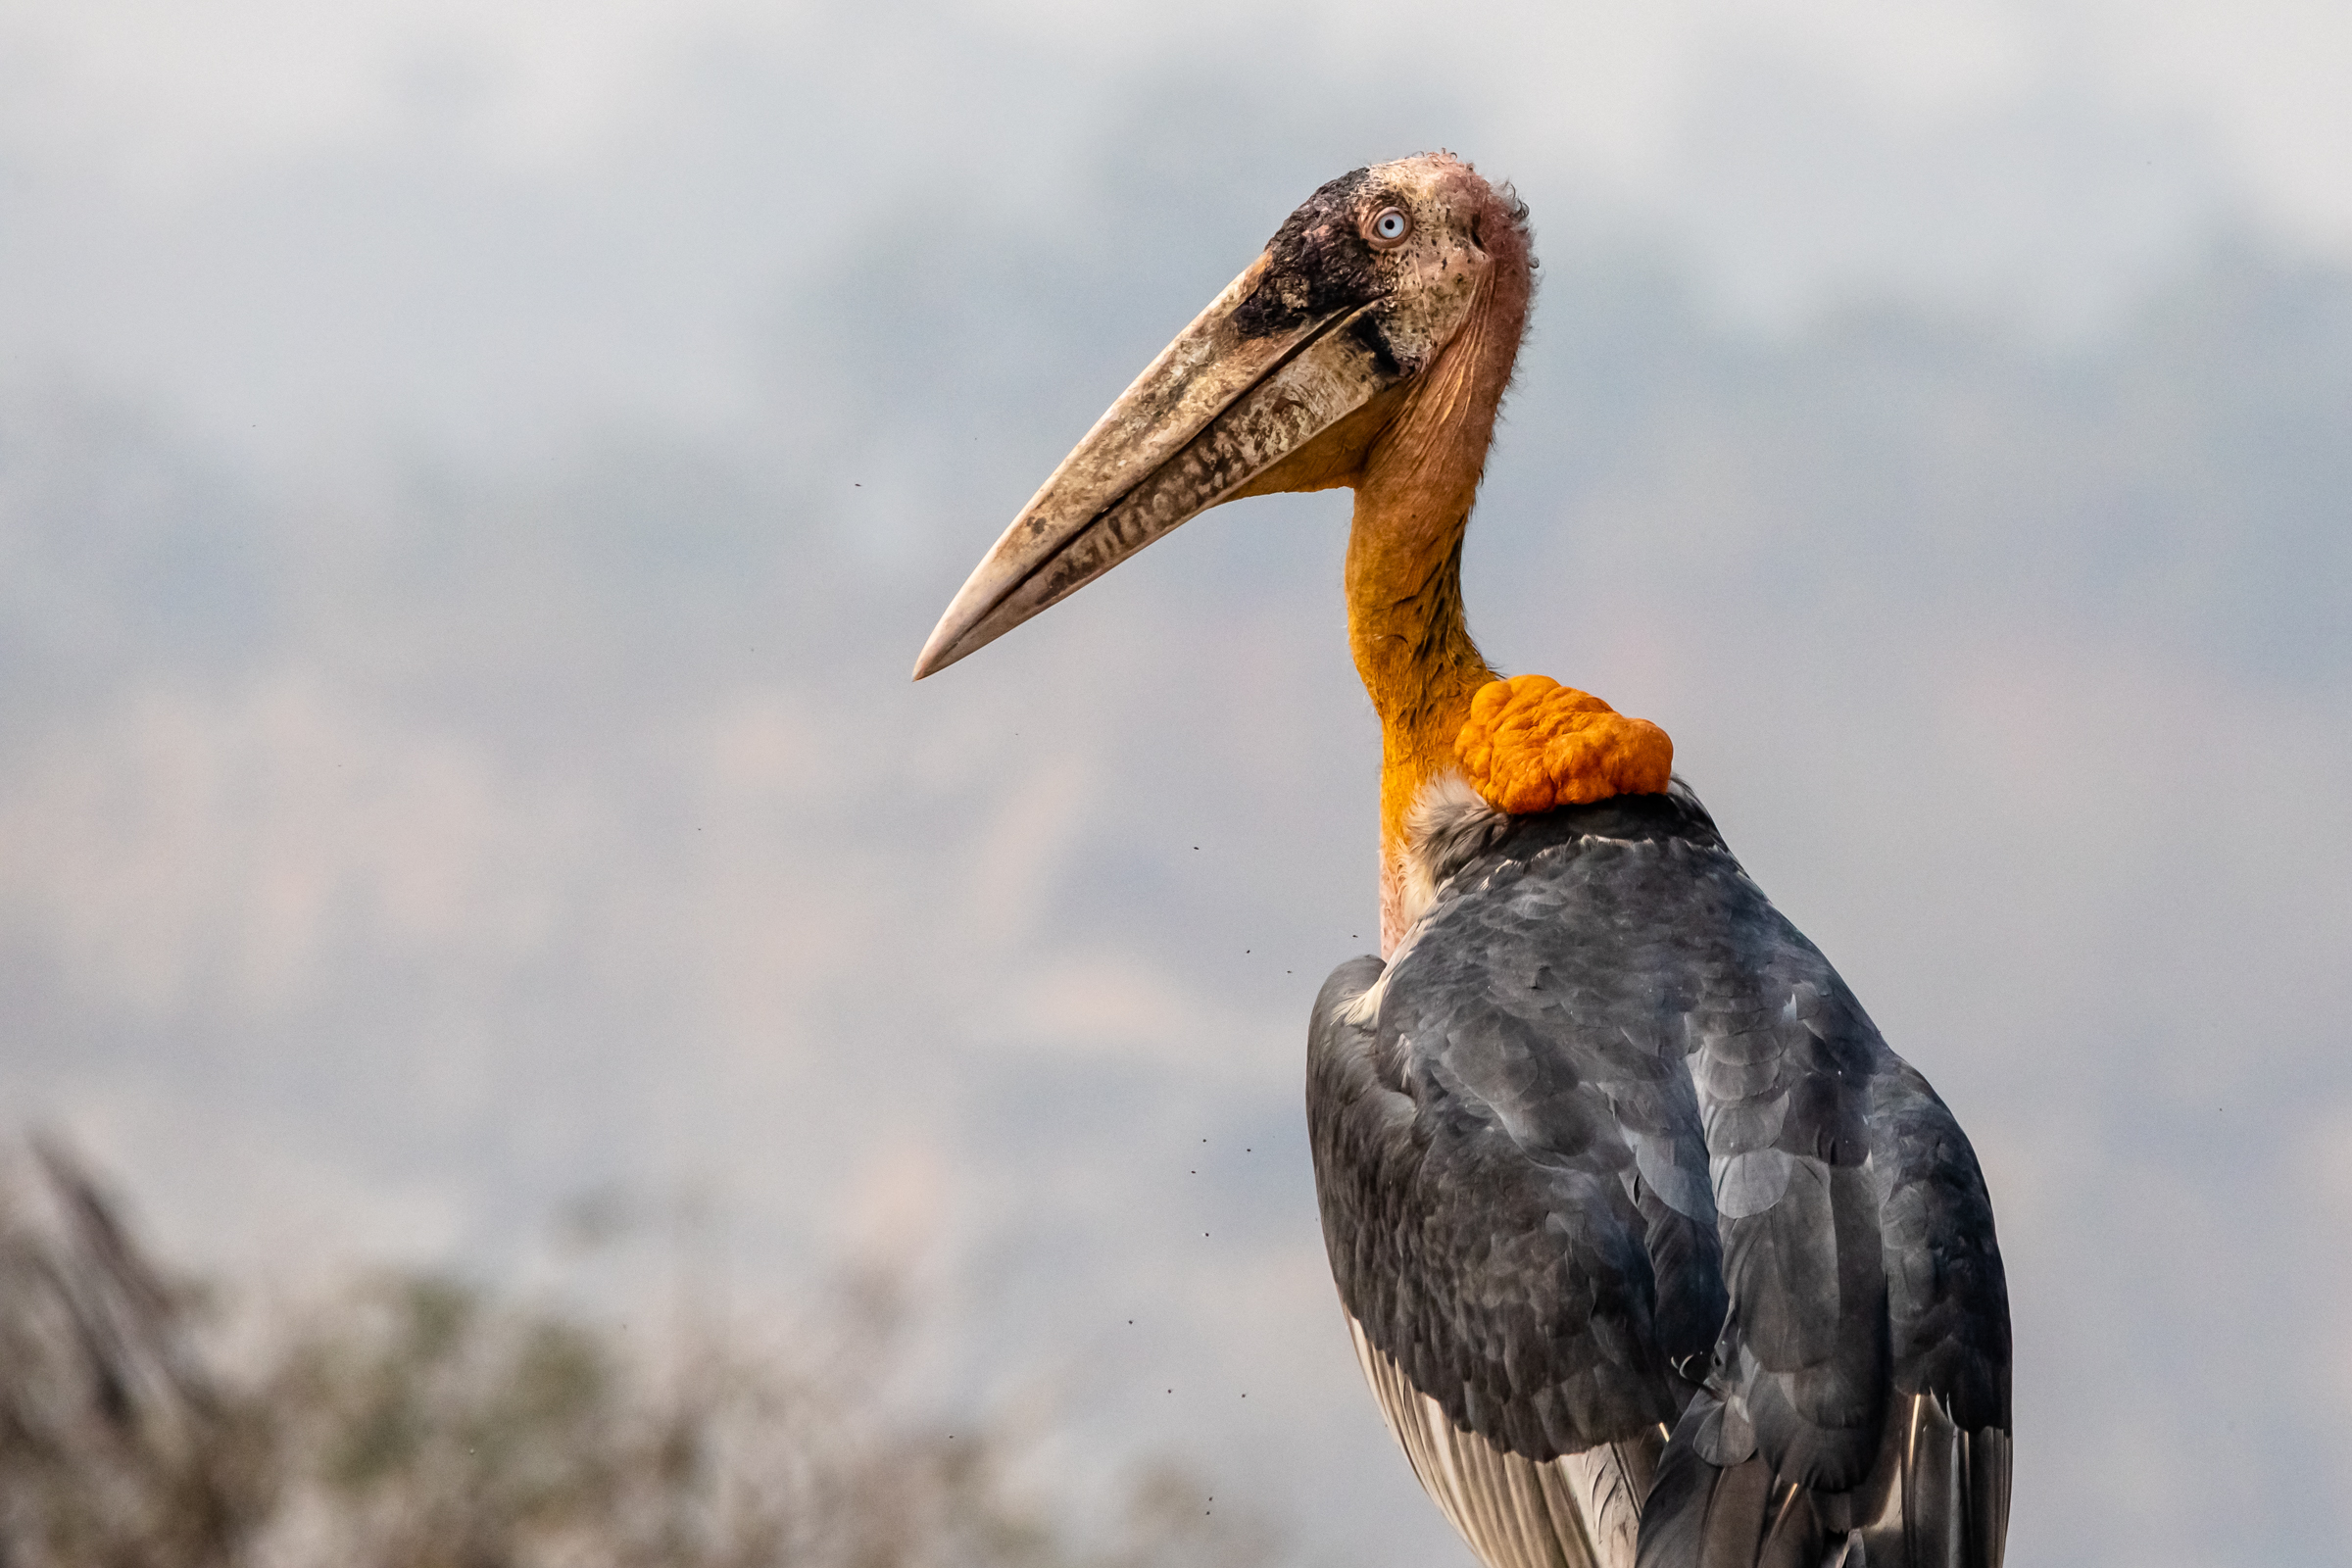 An endangered greater adjutant is pictured amongst the garbage in the Boragaon landfill located in Guwahati, Assam India. The landfill has the largest year-round concentration of the species in the world, and has become an important non-traditional habitat.